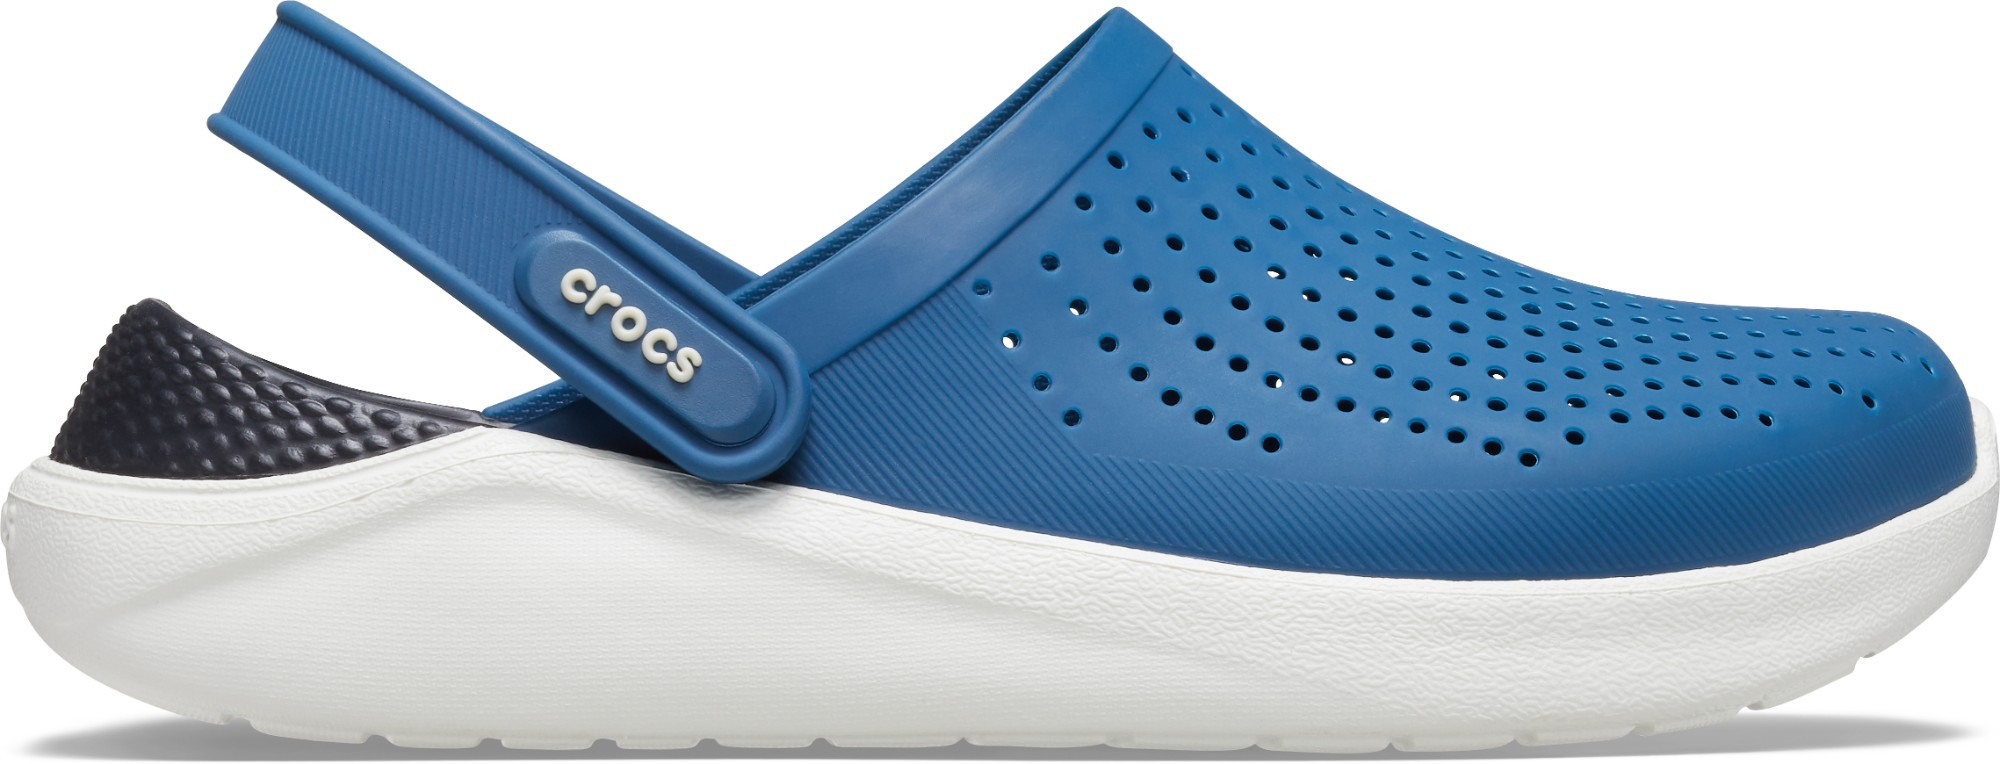 Crocs™ LiteRide Clog Vivid Blue/Almost White 38,5